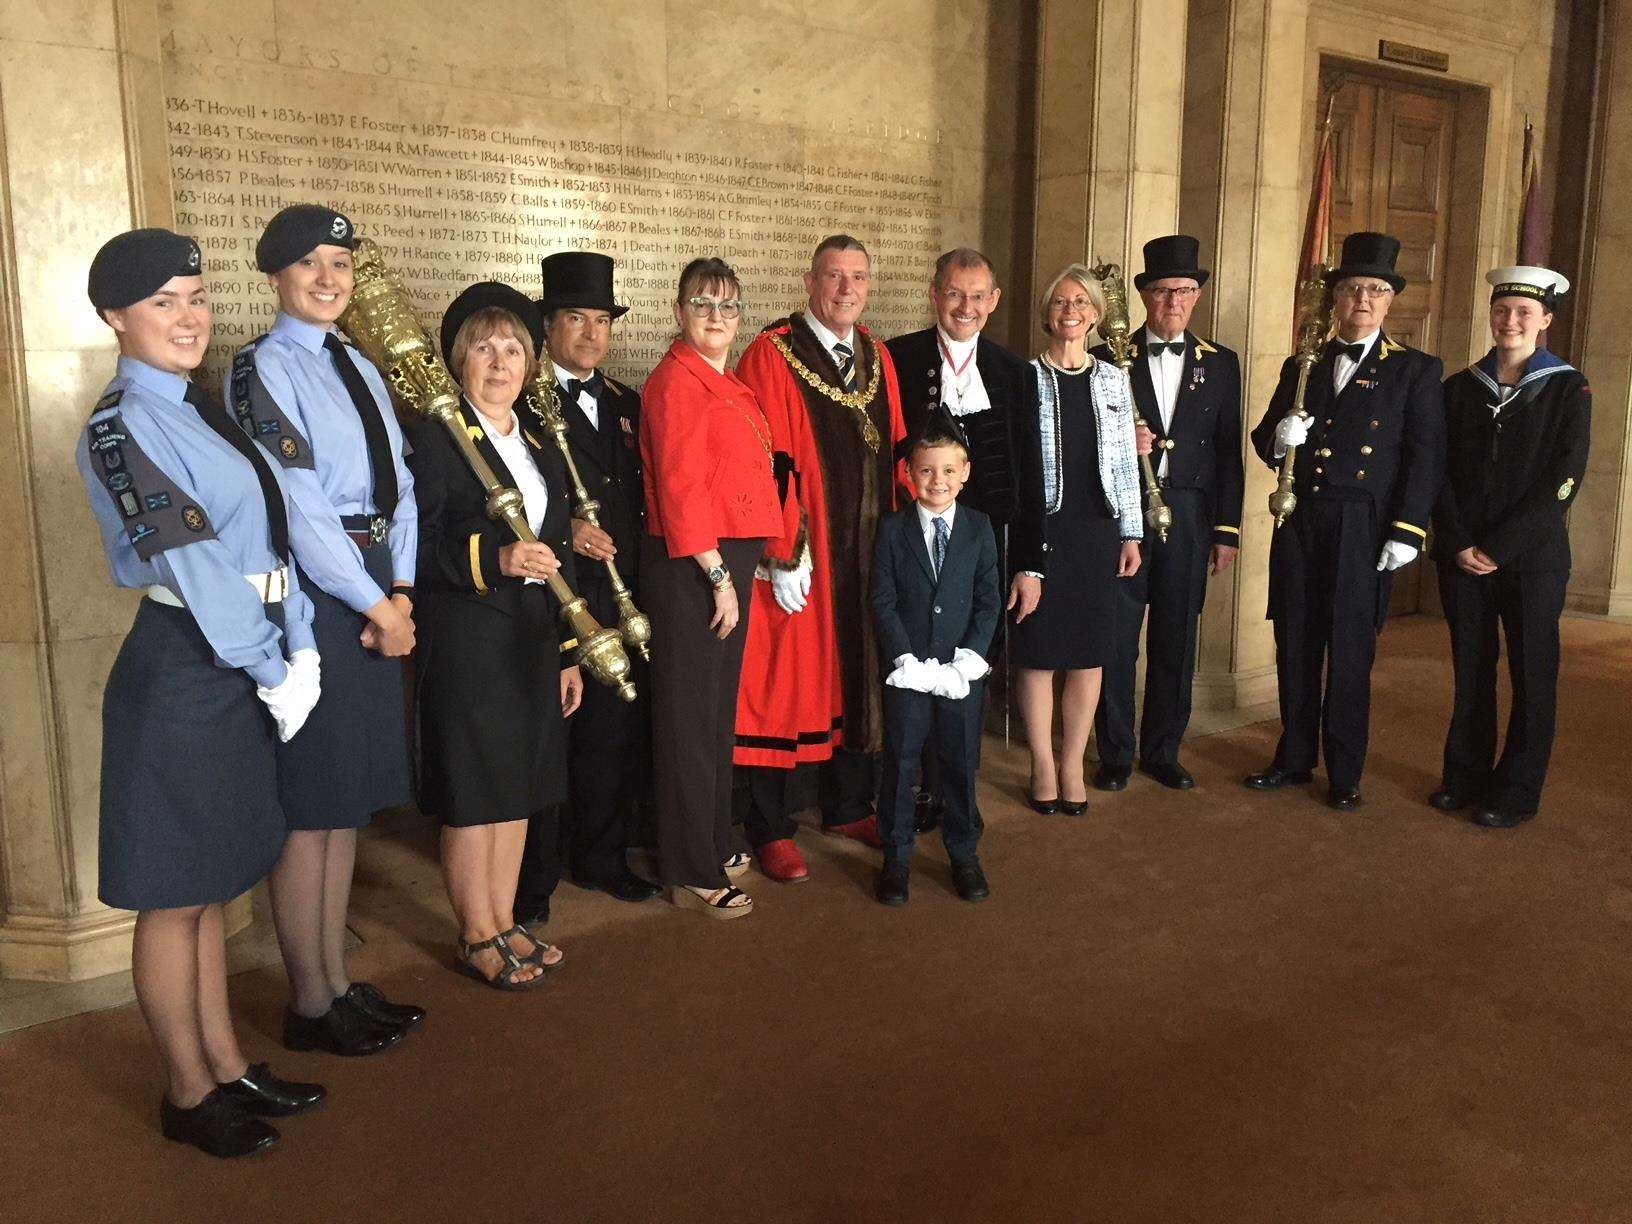 Cambridge mayor Nigel Gawthrope and, to his left, High Sheriff Andy Harter and deputy lieutenant of Cambridgeshire Lily Bacon